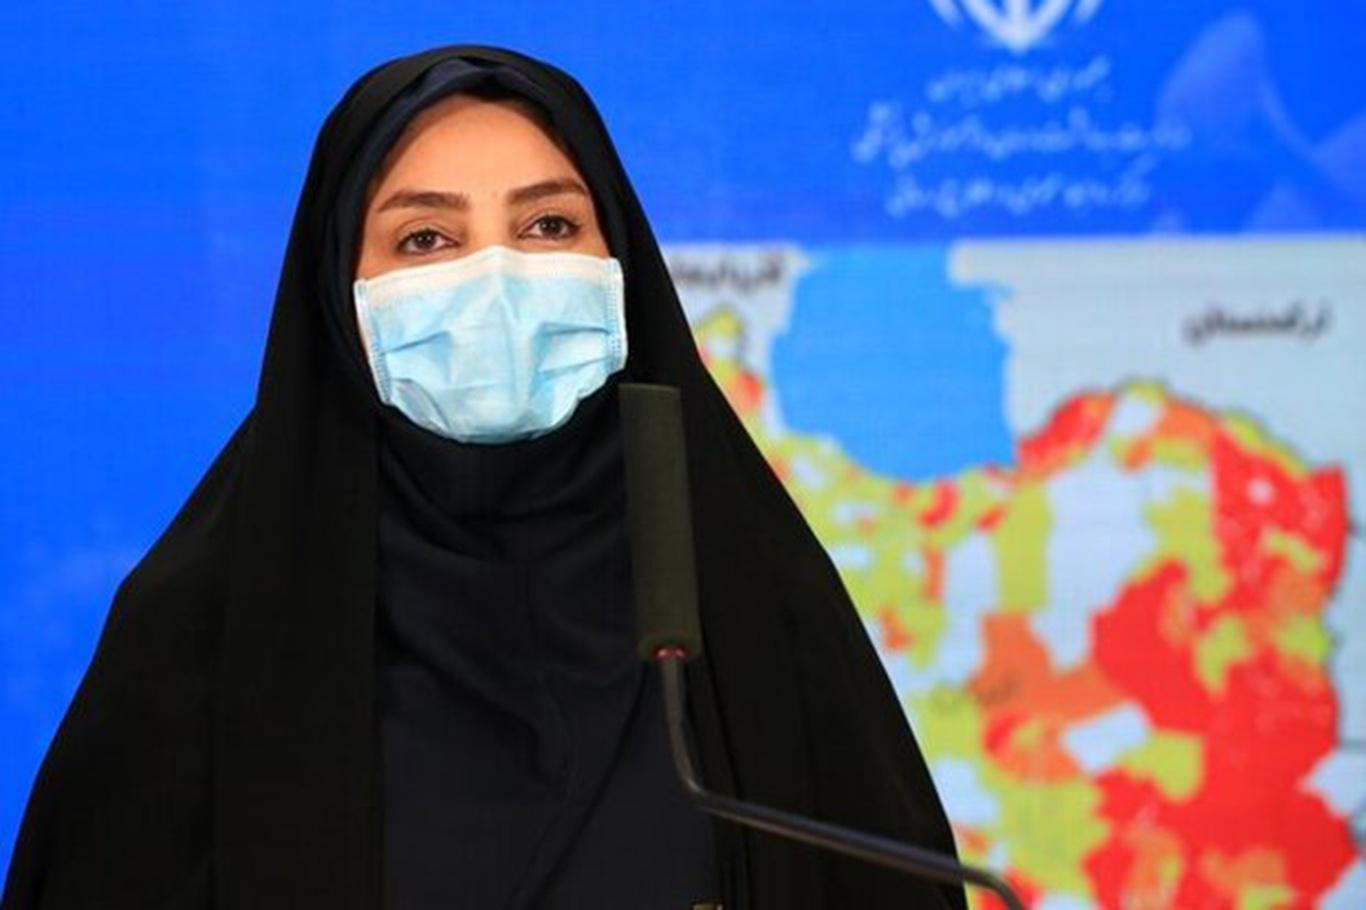 Iran reports 169 new deaths from coronavirus in the last 24 hours